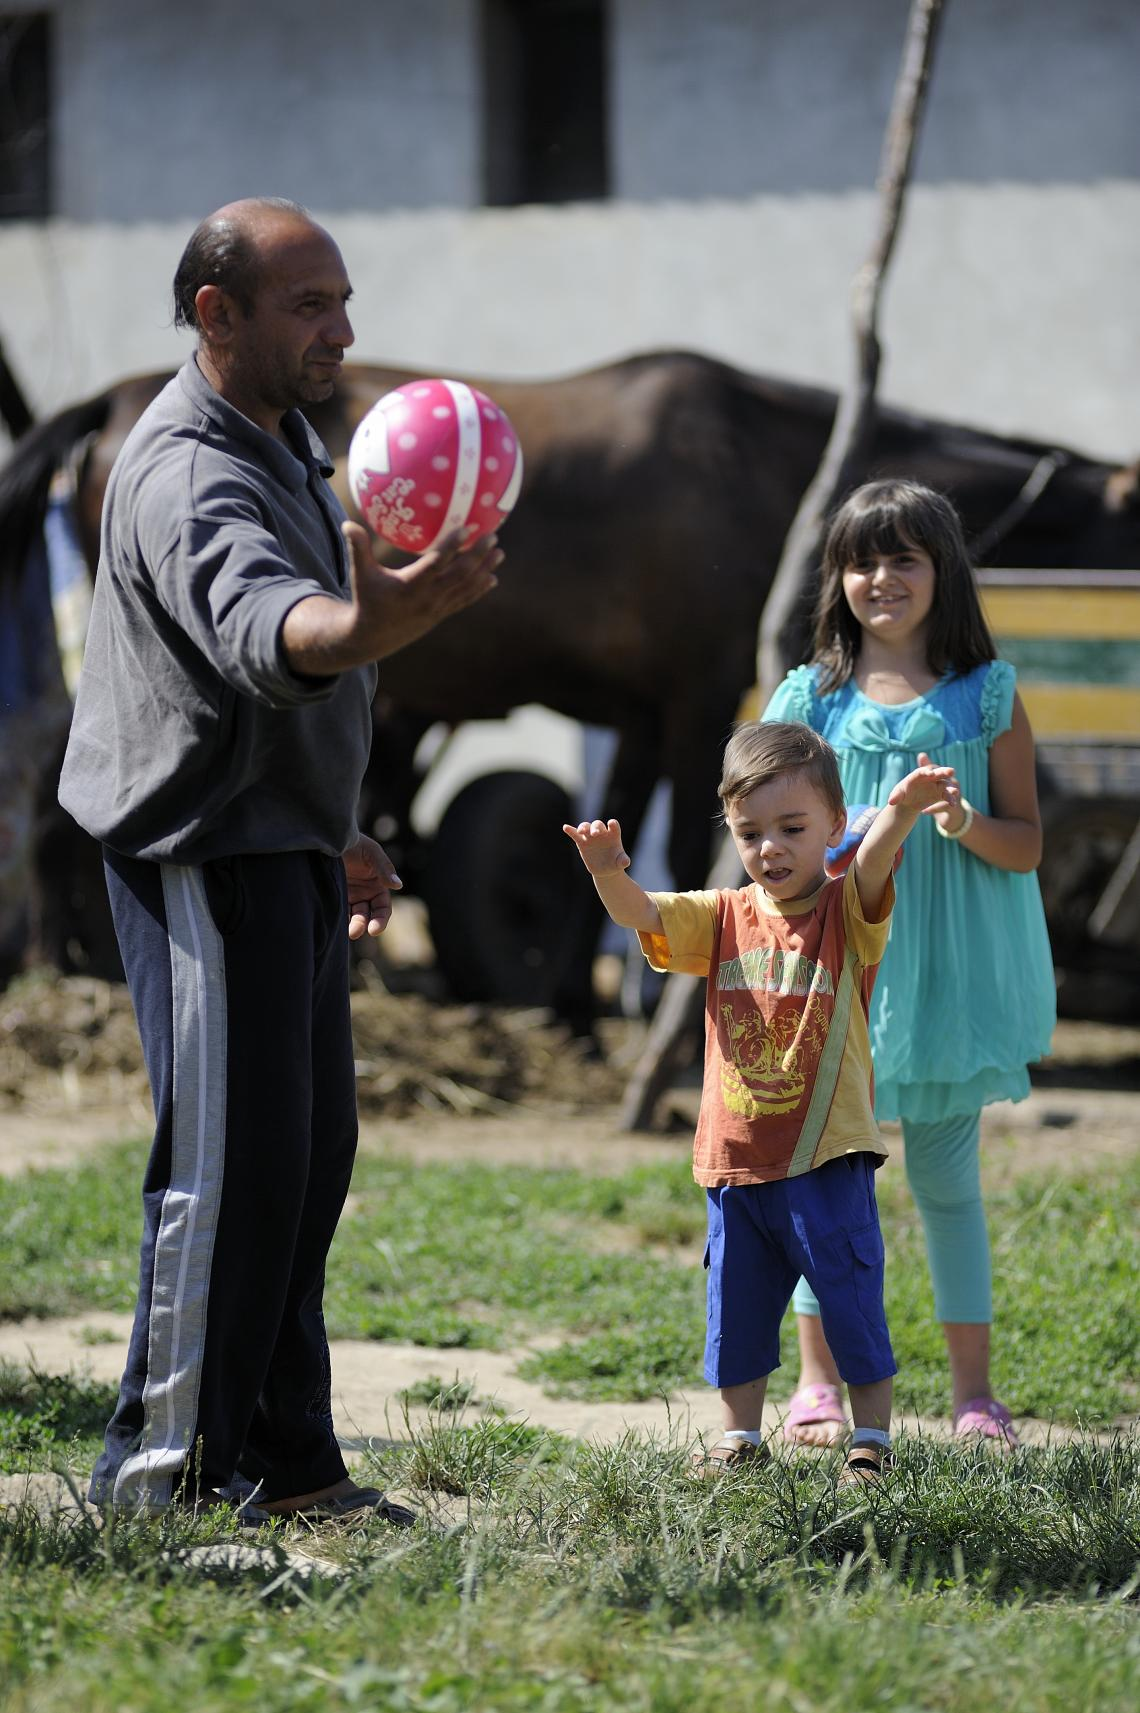 Zoran Jovanovic, playing with his children, David and Aleksandra, in the yard in front of the house.